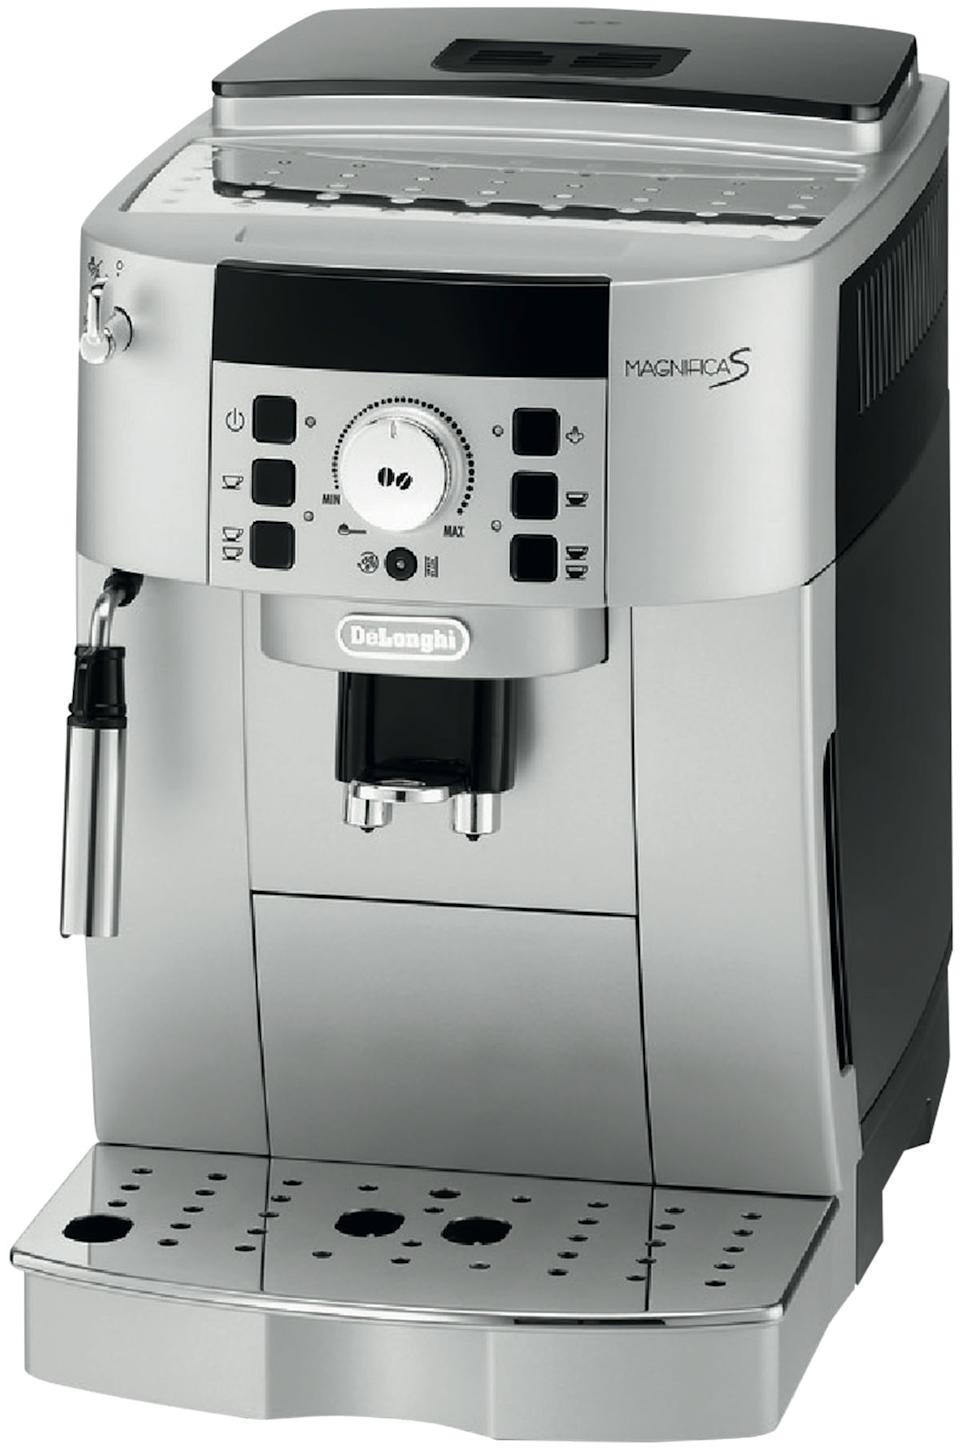 DeLonghi Magnifica S Fully Automatic Coffee Machine ECAM22110SB, $749 from The Good Guys. Photo: The Good Guys.